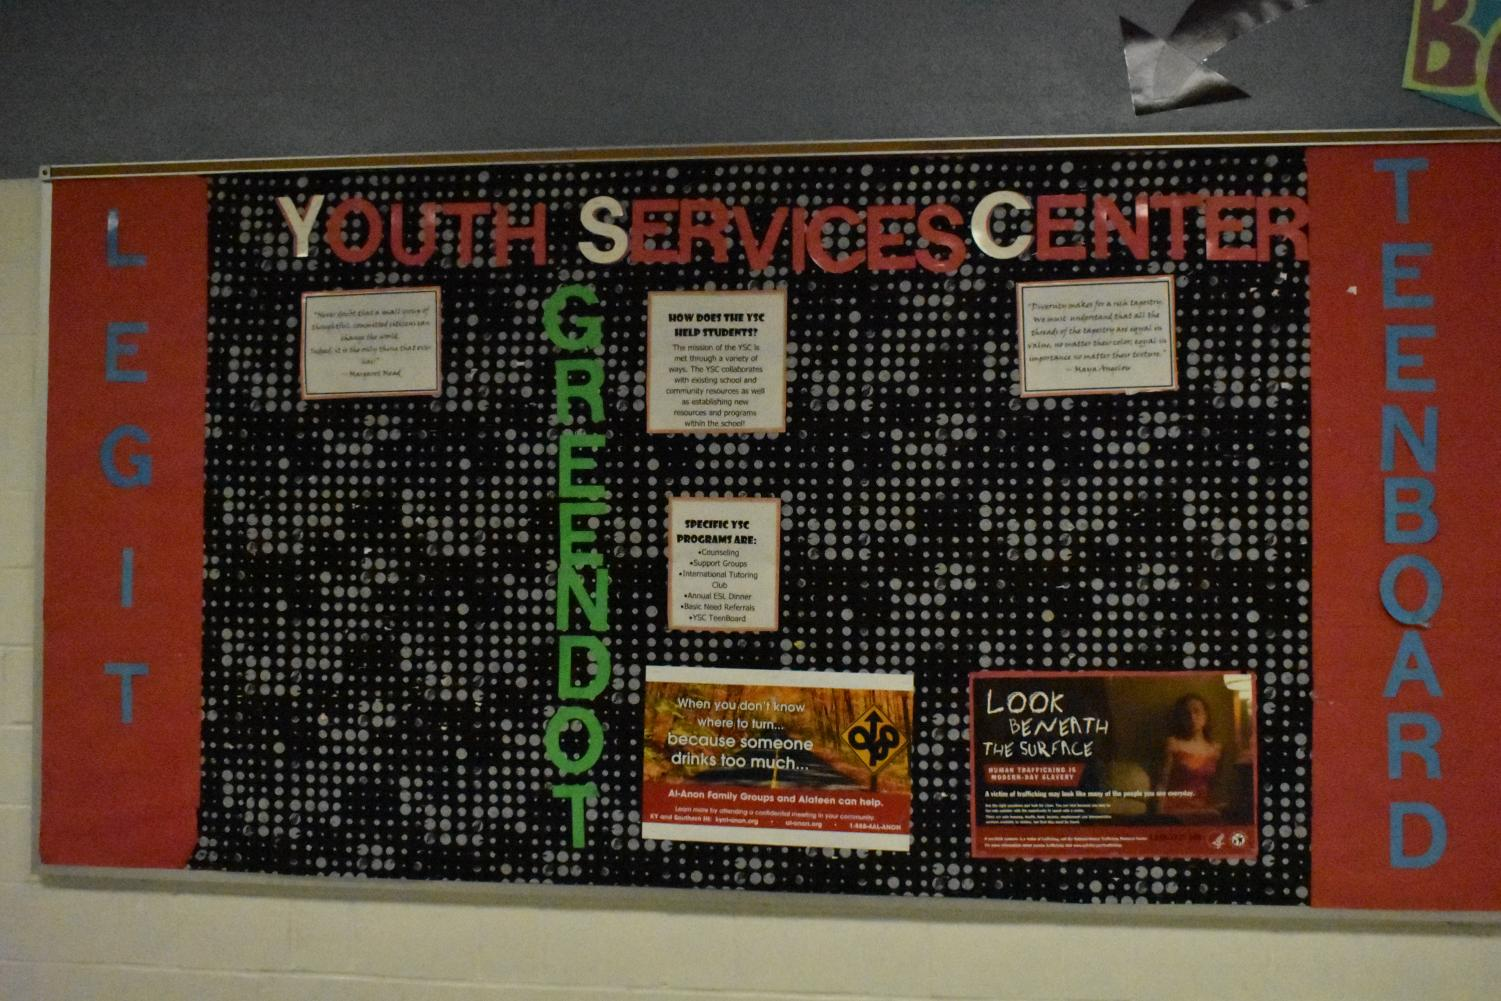 Bulletin board outside of the YSC provides information for Legit, Teen Board, and Green Dot.